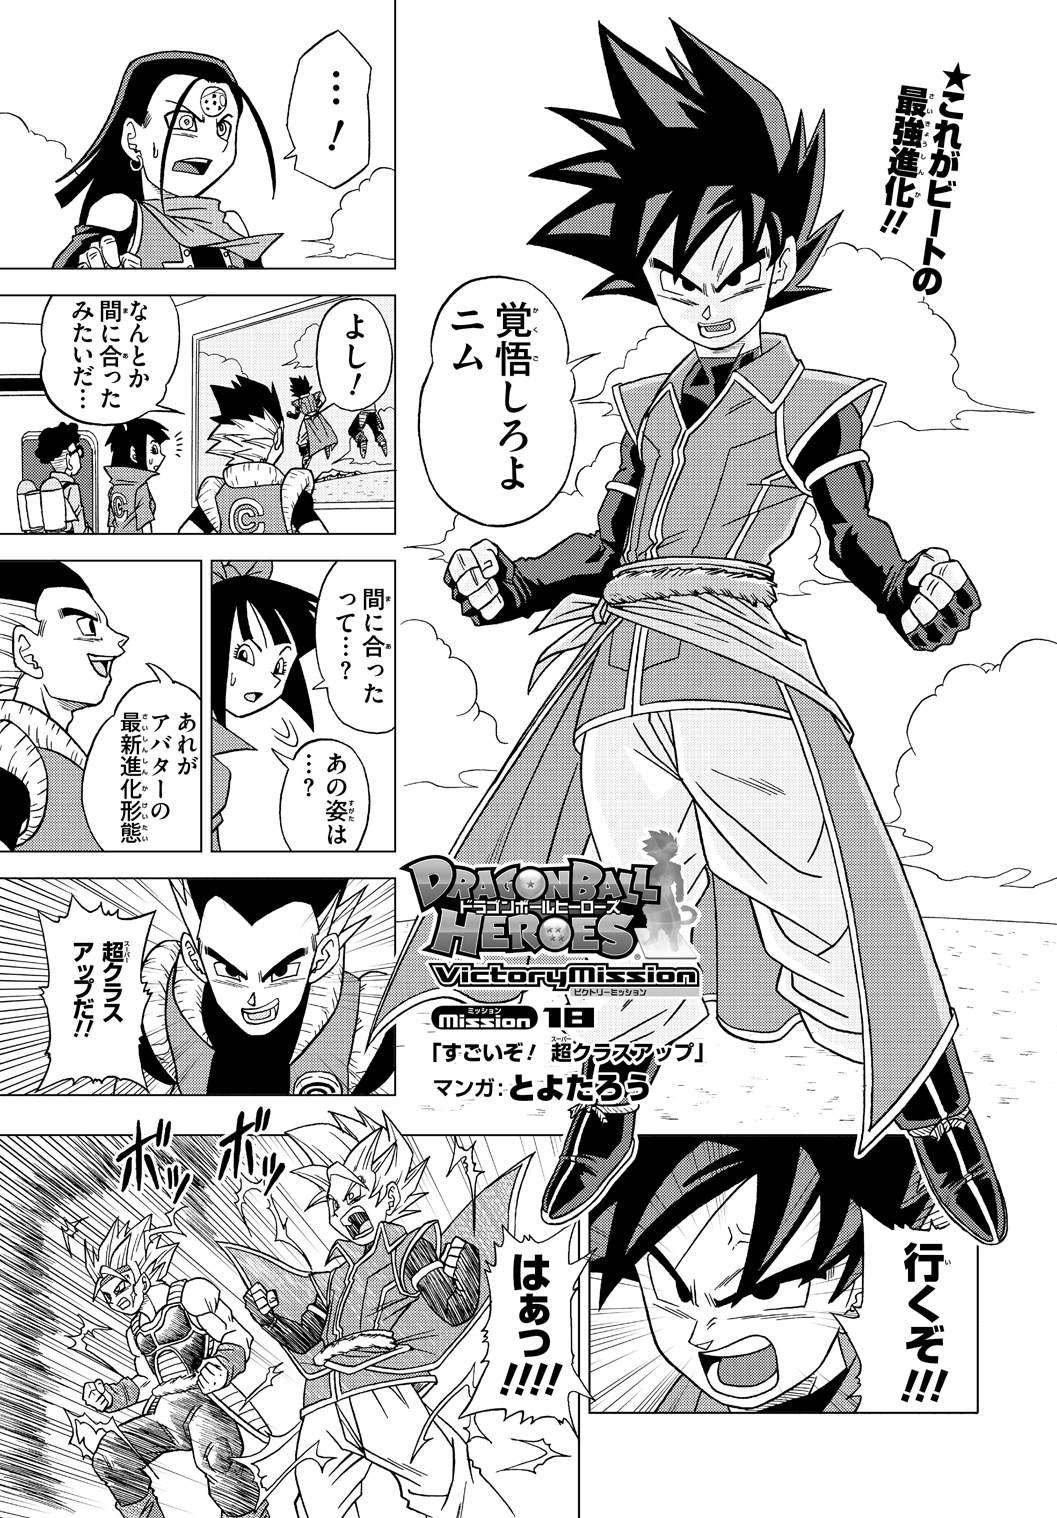 Dragon Ball Heroes Victory Mission Chapitre 018